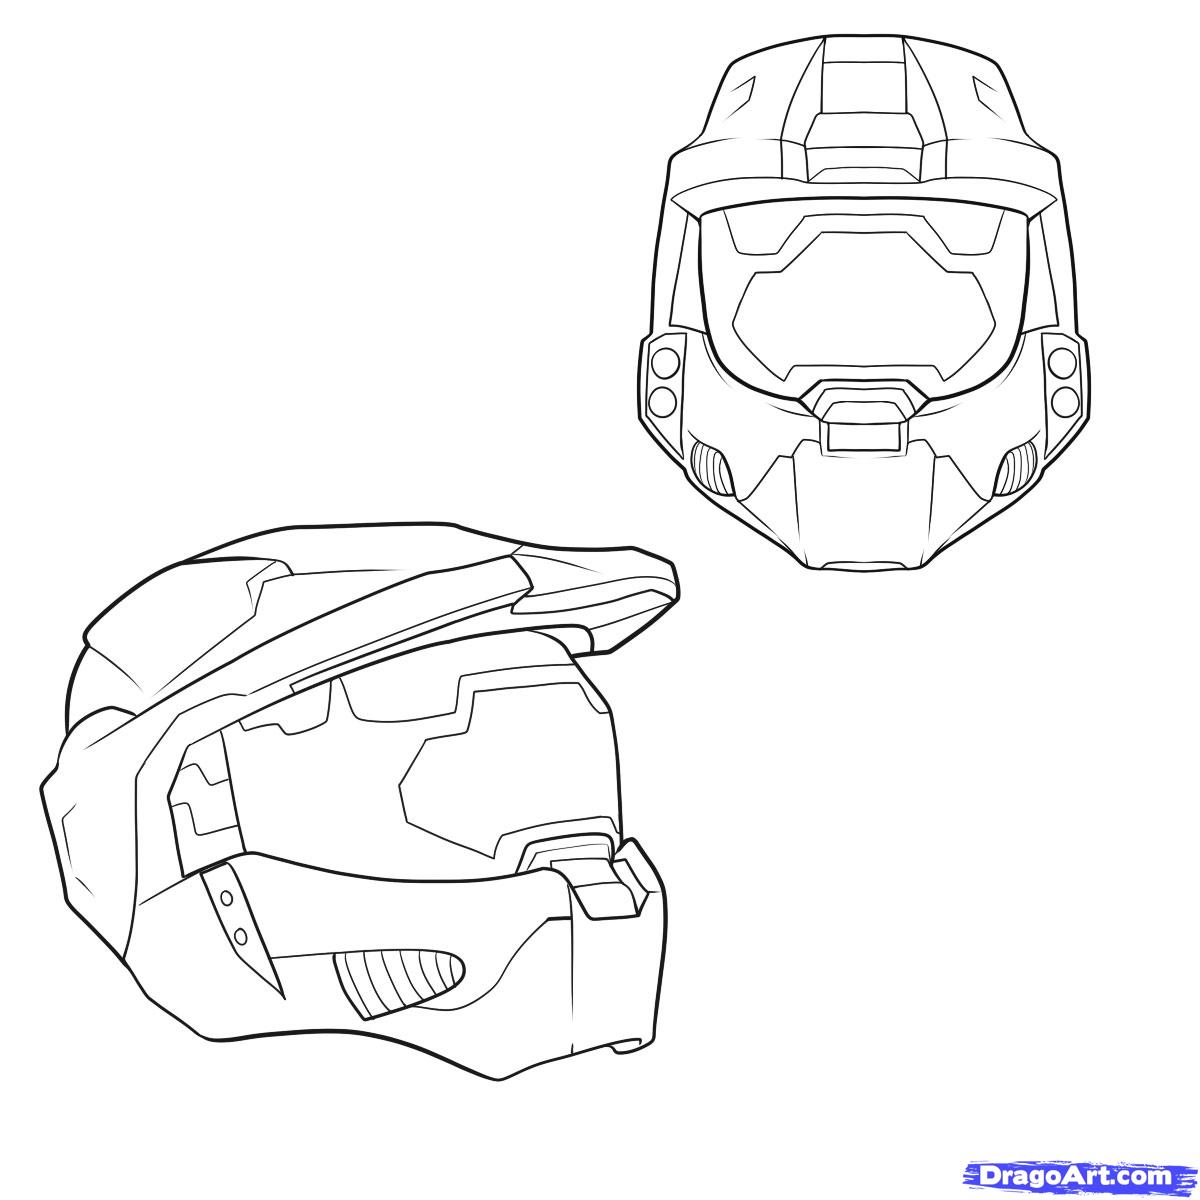 1200x1200 Themes How To Draw A Halo Gun Step By Step Plus Halo Master